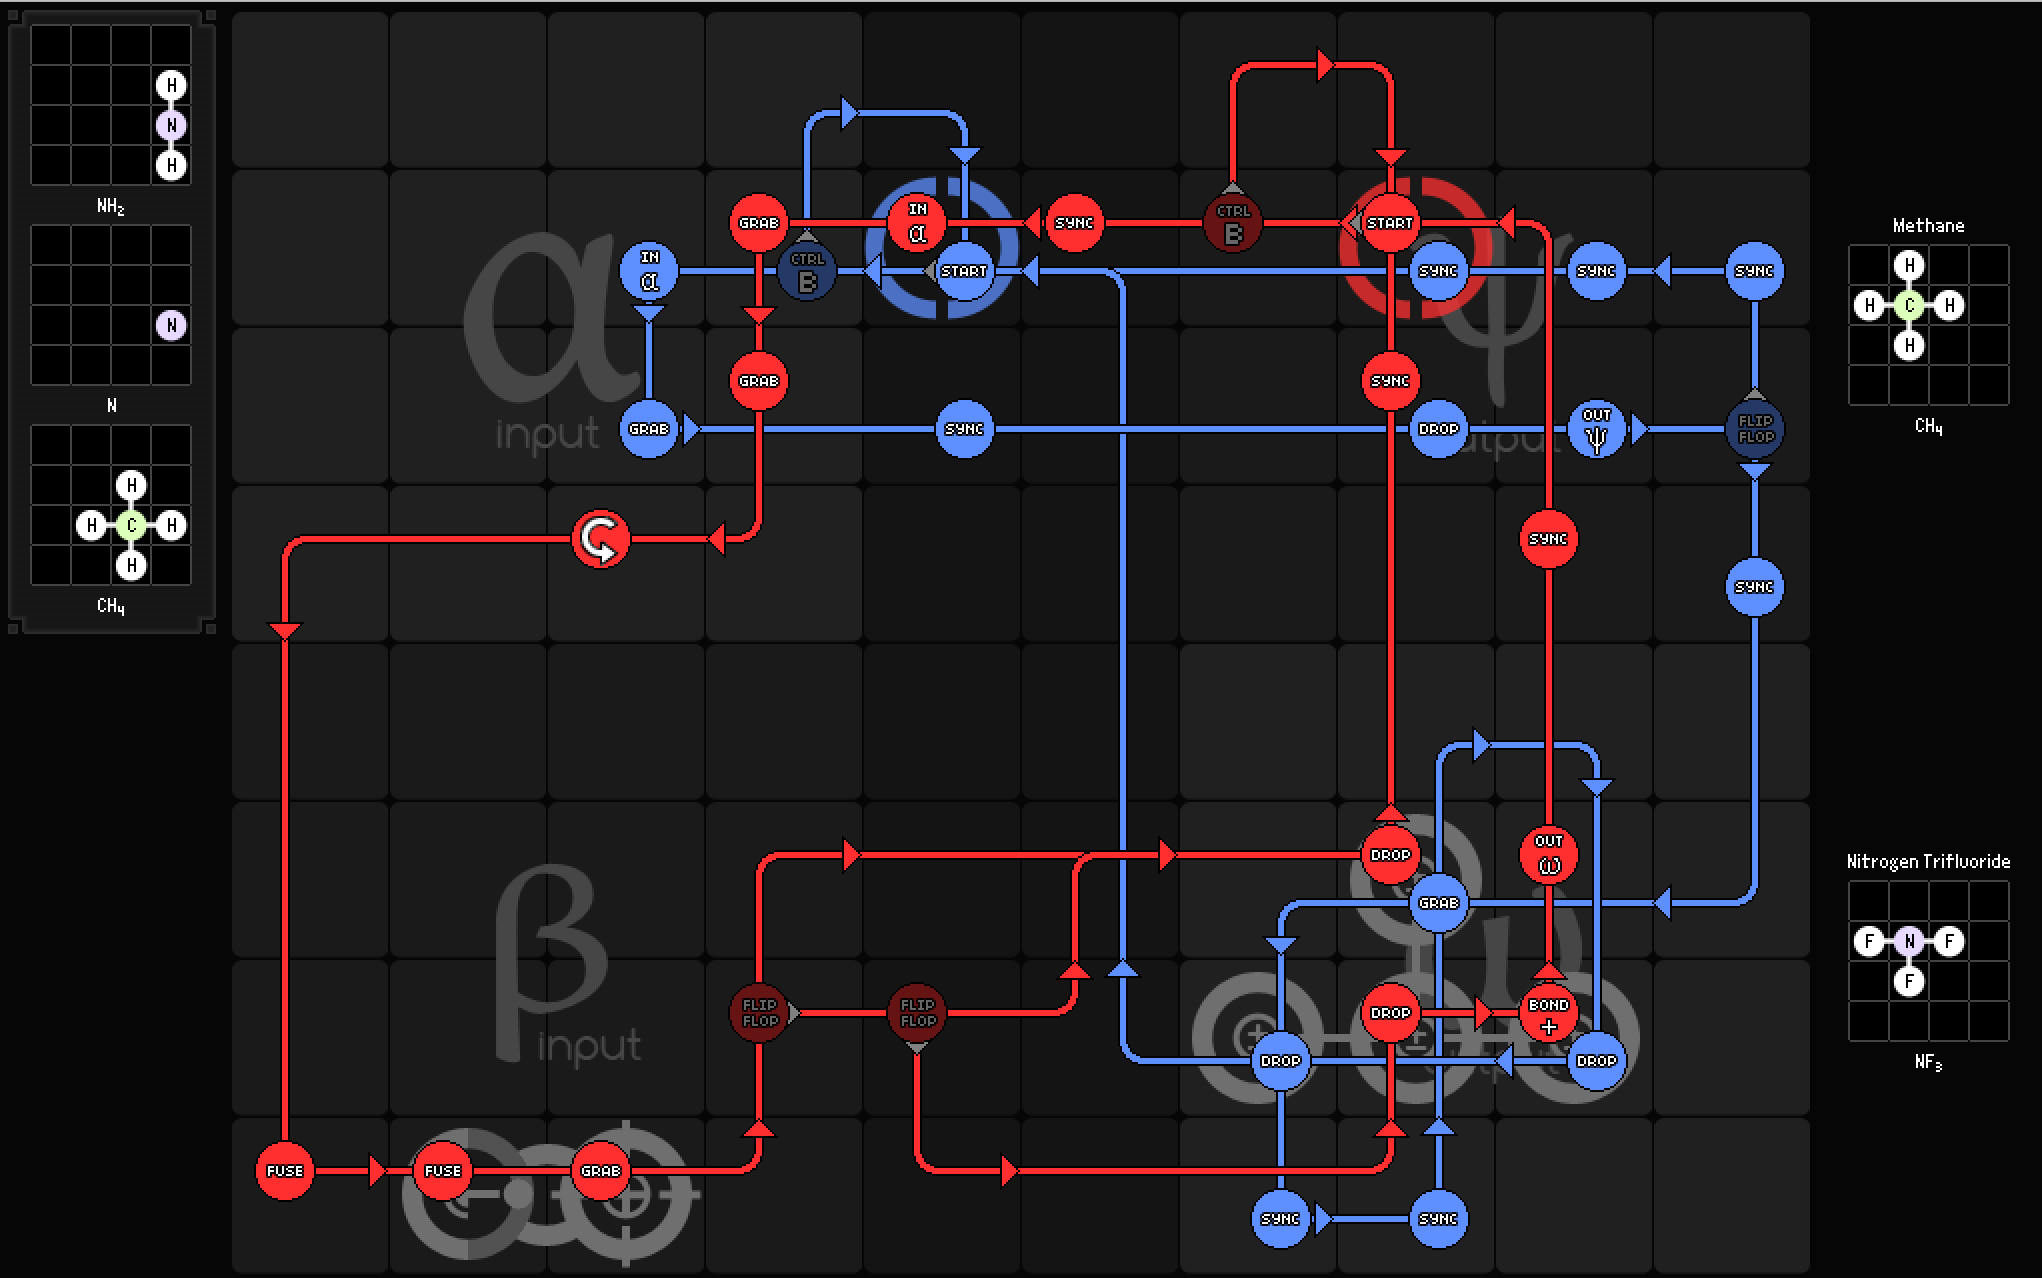 1_Story_Mode/7_Atropos_Station/SpaceChem-7.6.a-boss/Reactor_2.png